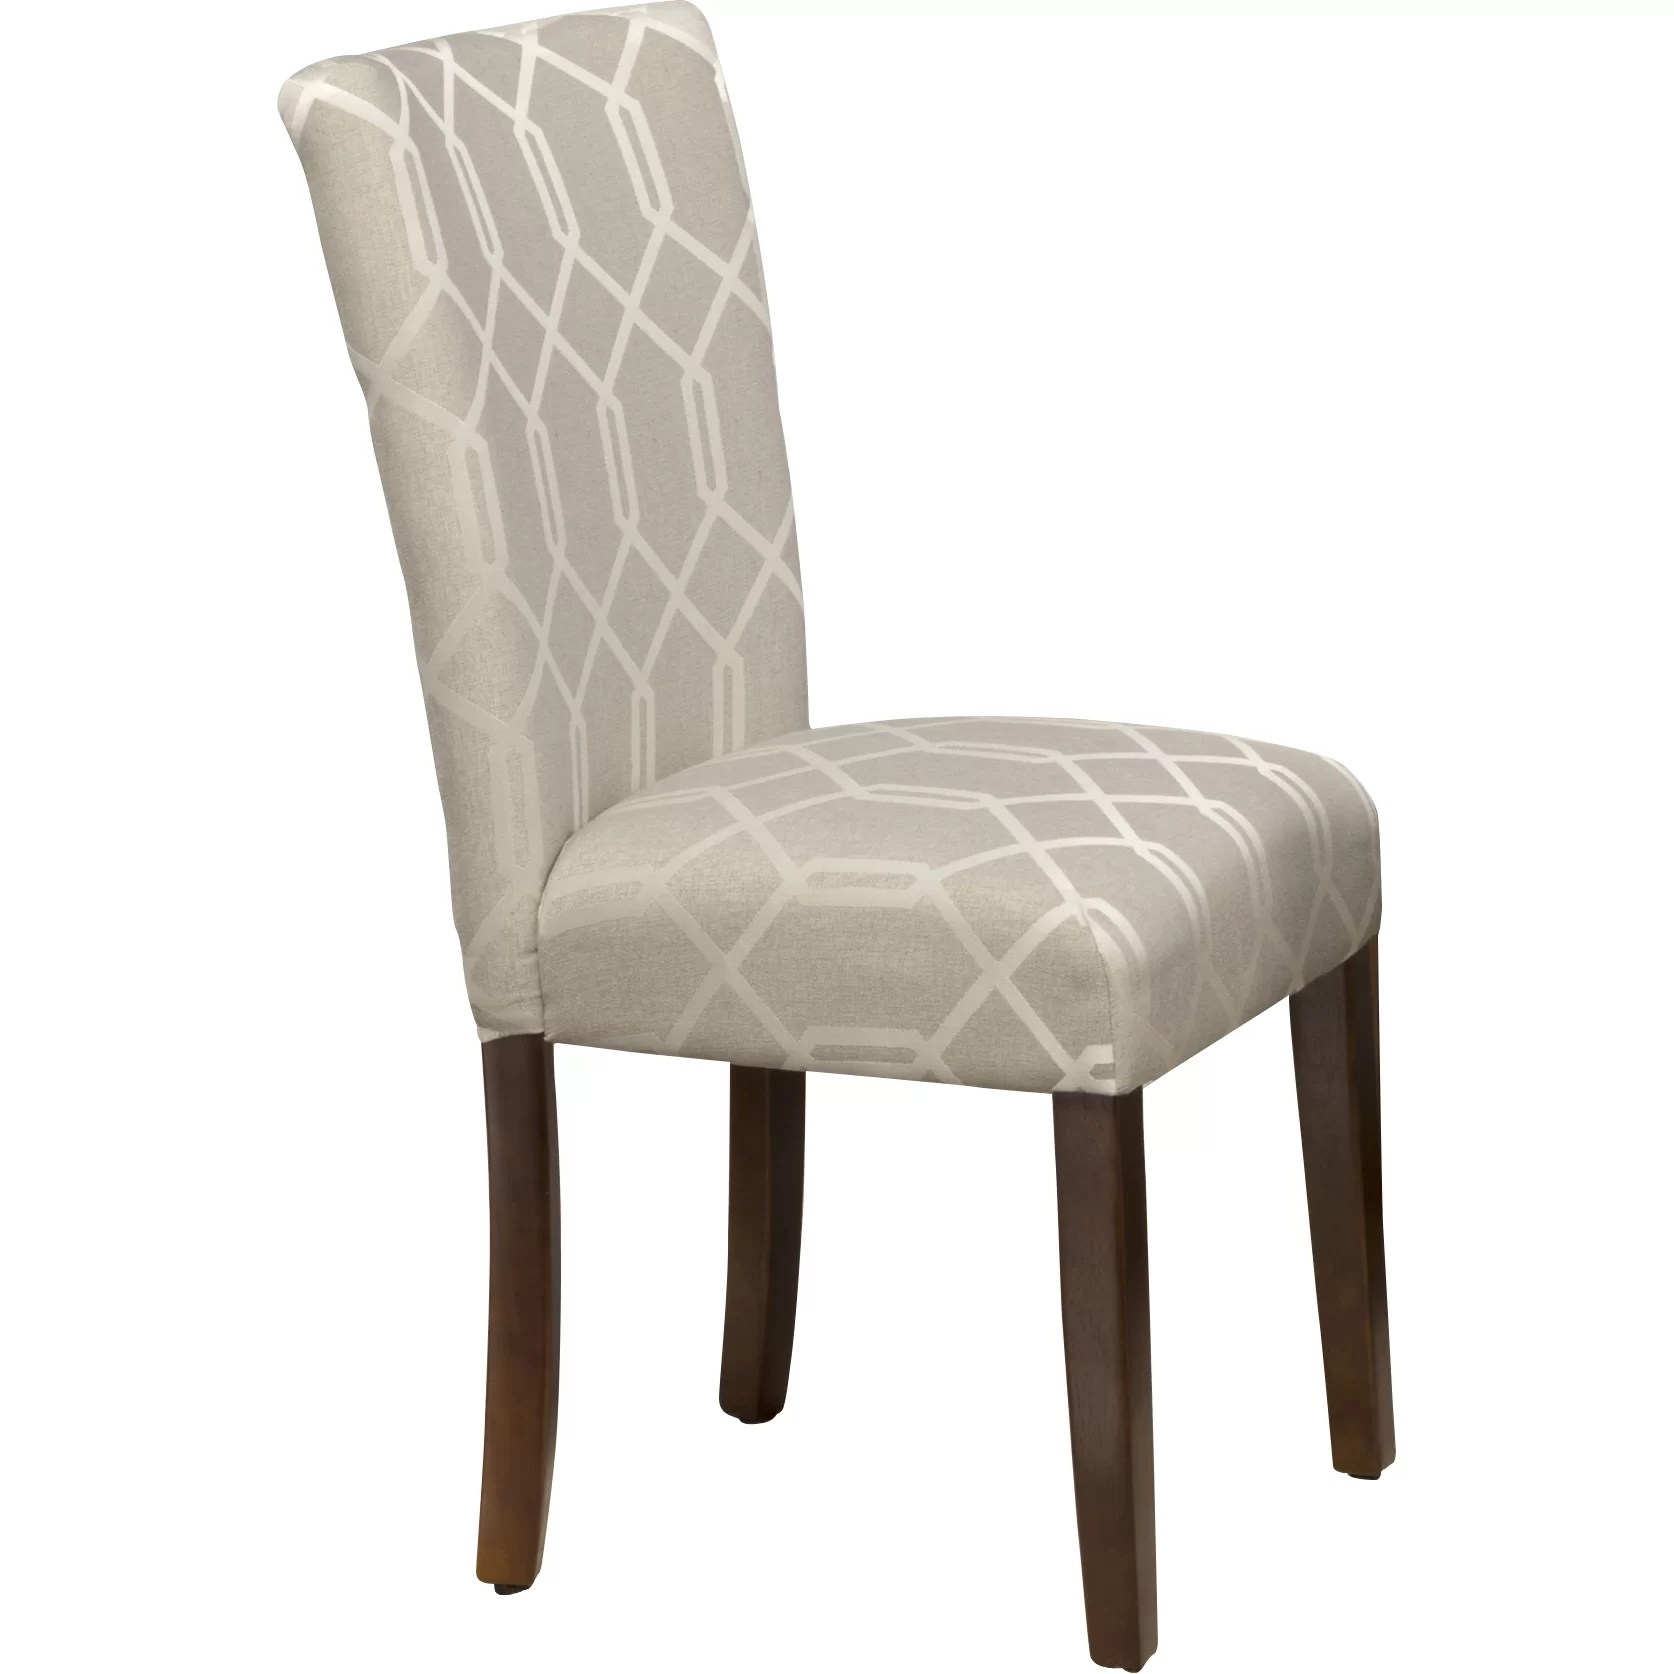 Parson Chair Homepop Traditional Parsons Chair And Reviews Wayfair